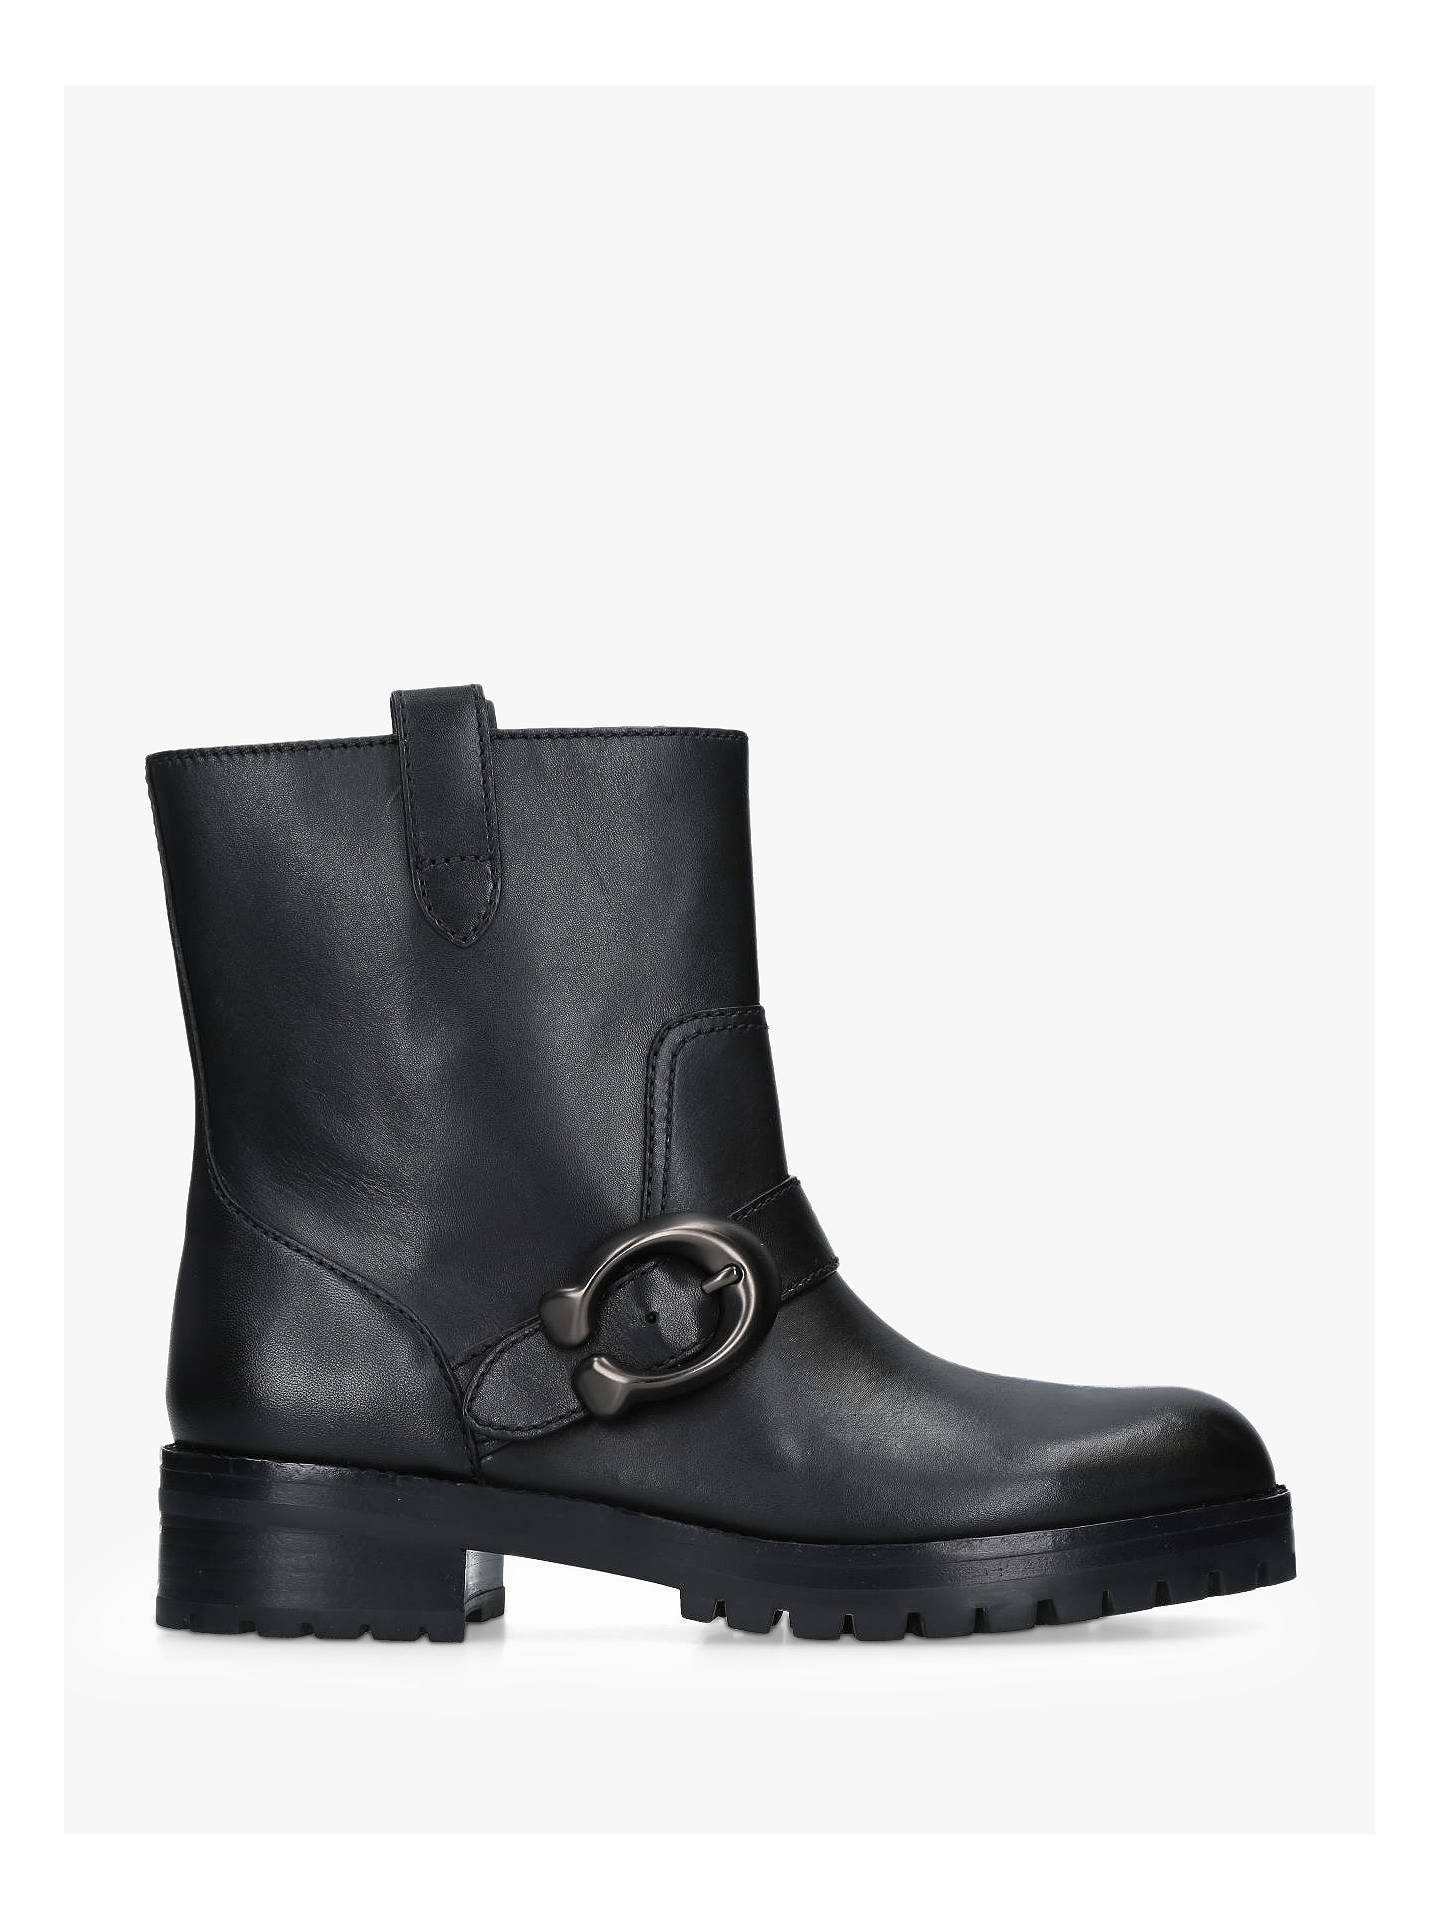 9d9bd24b391 Coach Leighton C Buckle Ankle Boots, Black Leather at John Lewis ...